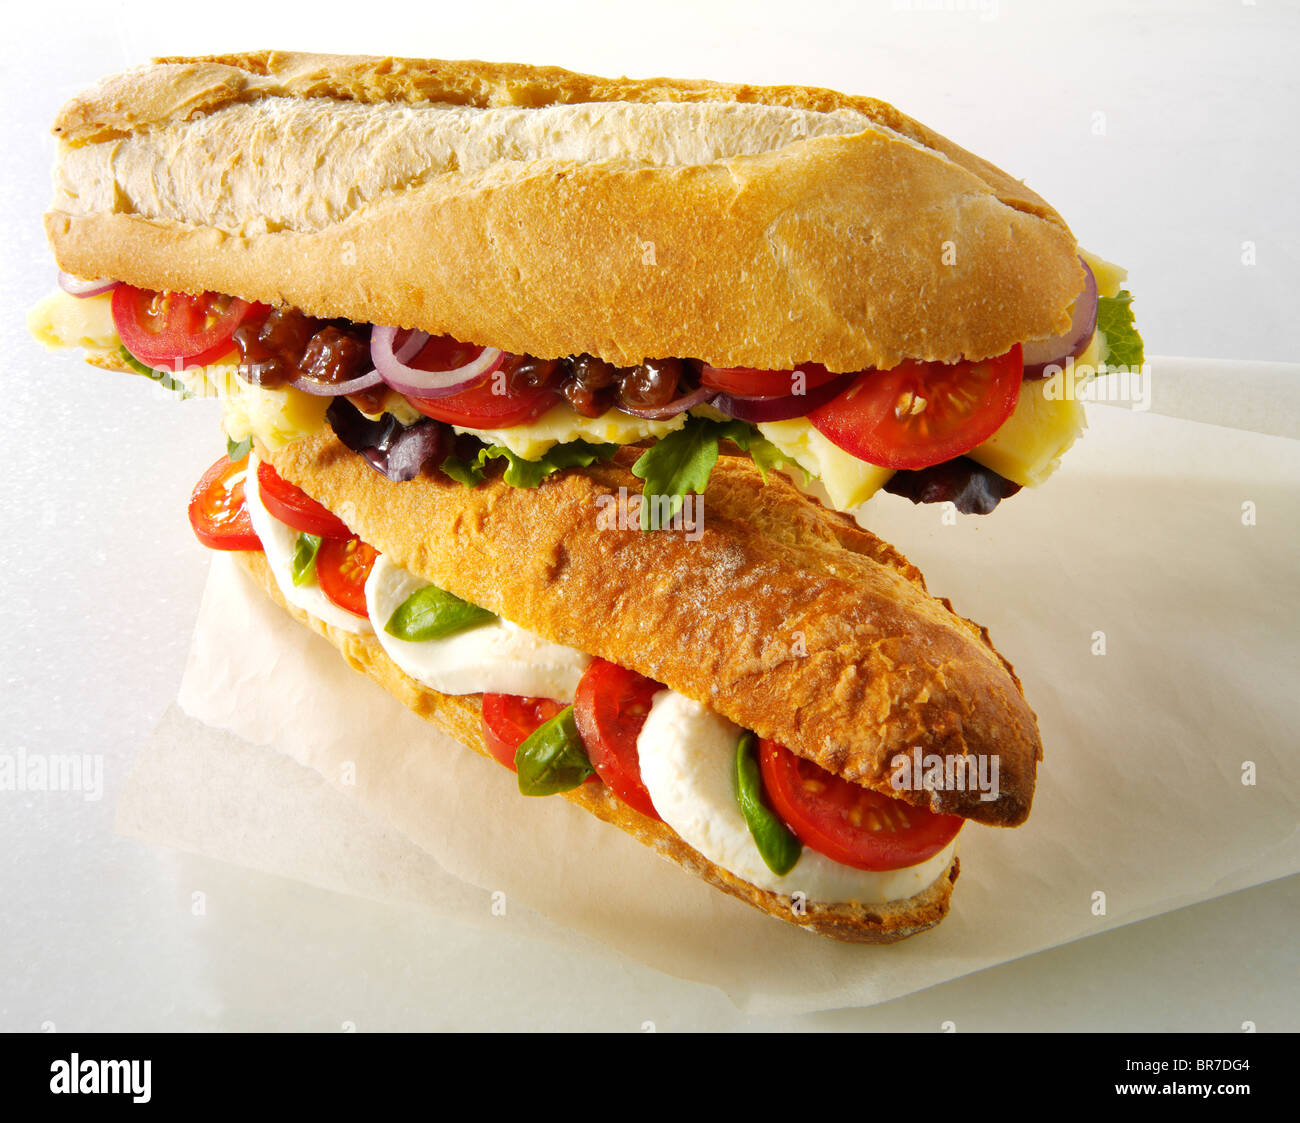 Bread baguettes filled with mozerella & tomatoes, and cheddar ploughmans with chutney - Stock Image